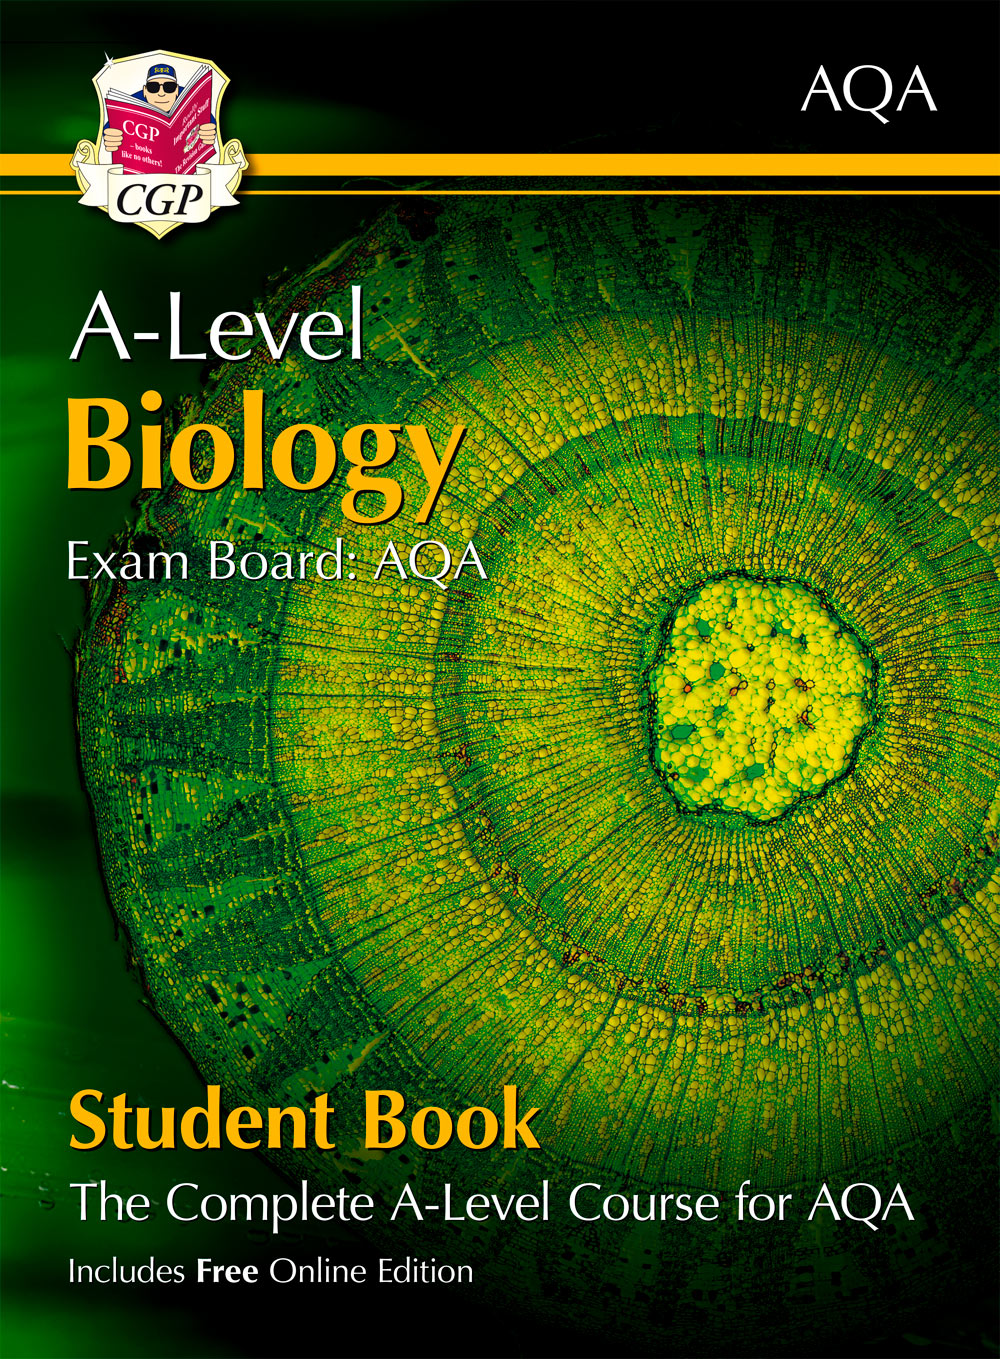 BATB72 - A-Level Biology for AQA: Year 1 & 2 Student Book with Online Edition